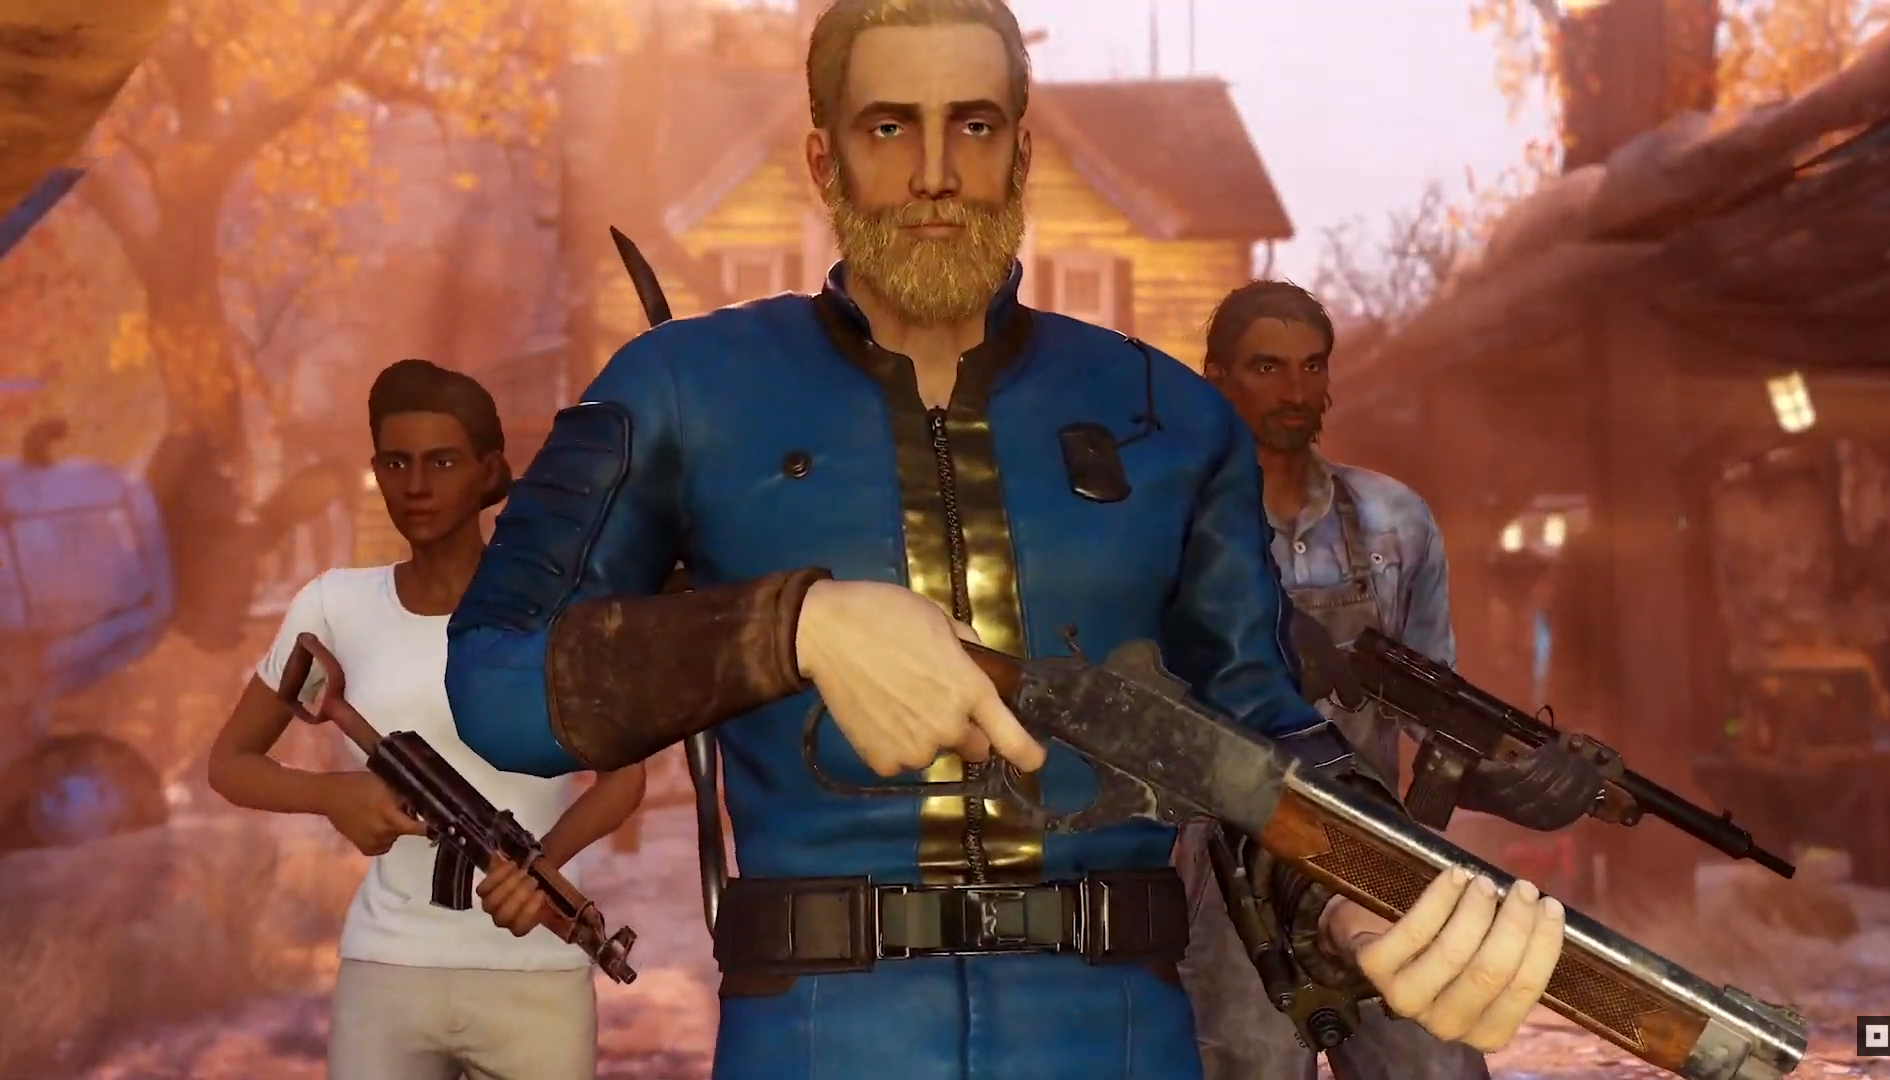 You'll be able to romance your Fallout 76 companions, but they won't follow you around   PC Gamer